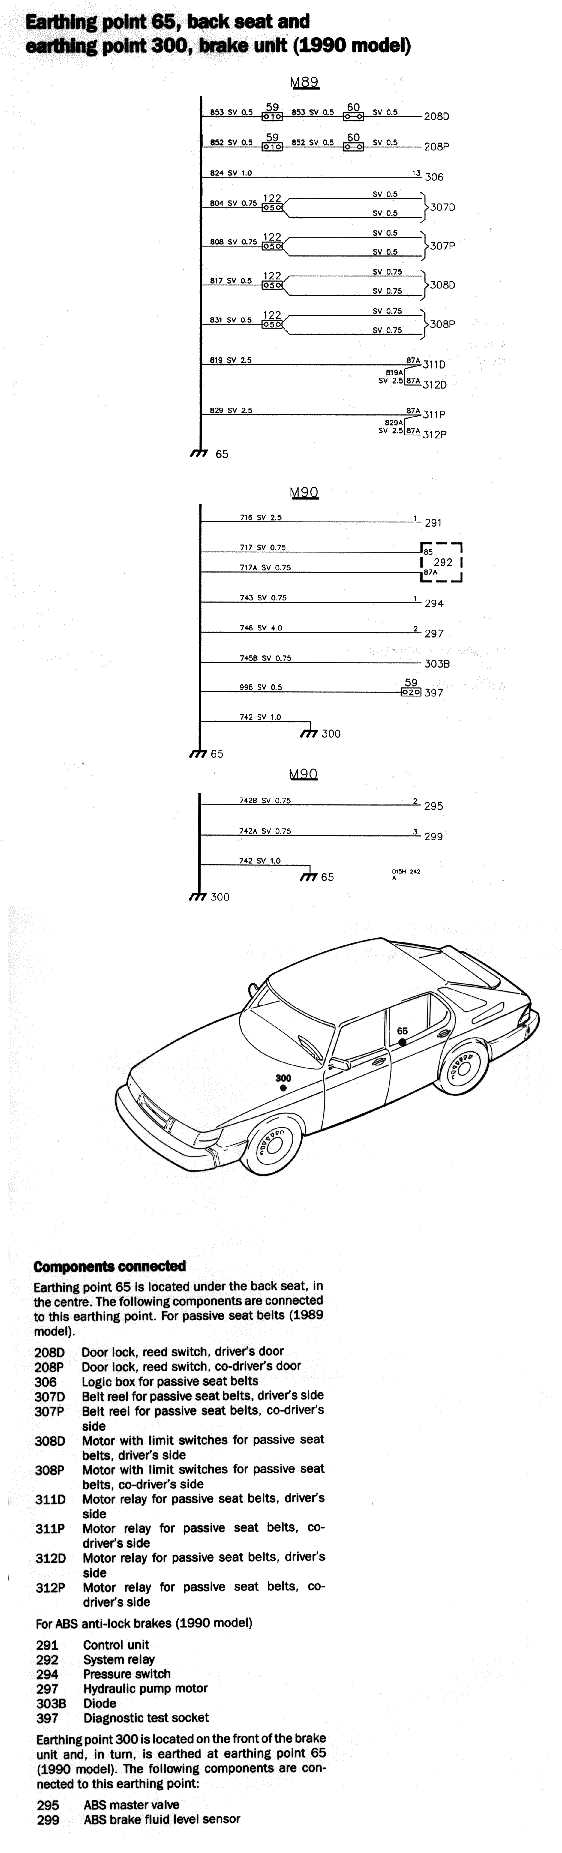 Electrical 900 89 90 Saab Ignition Wiring Diagram Between The Switch And Handbrake Lever 38 Negative Distribution Terminal 158 In Box